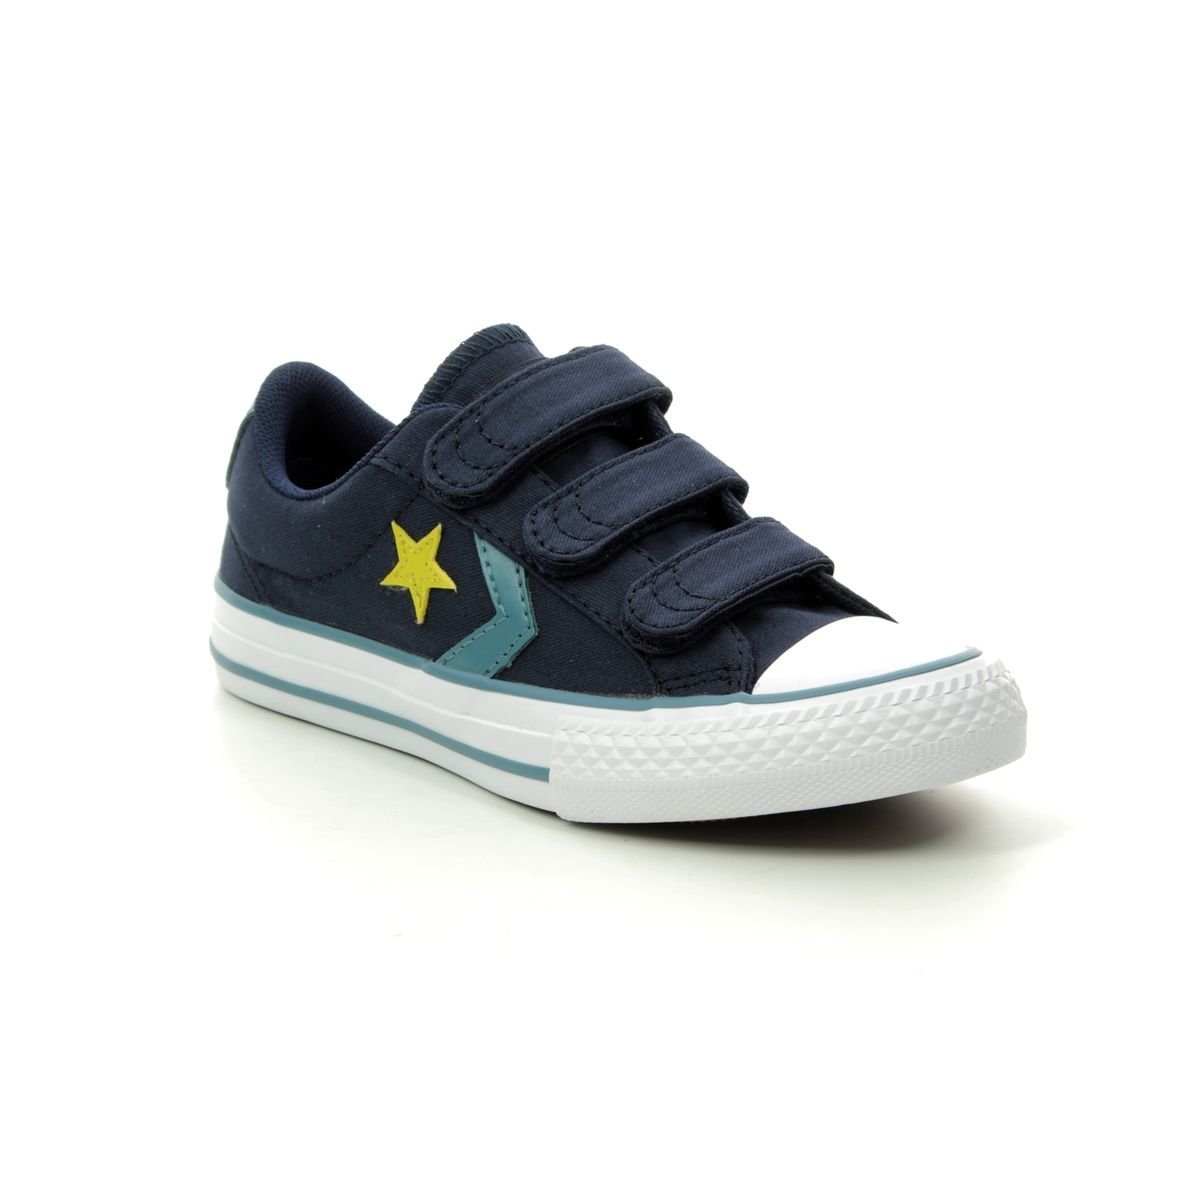 23439544743567 Converse Trainers - Navy - 663600C STAR PLAYER 3V VELCRO